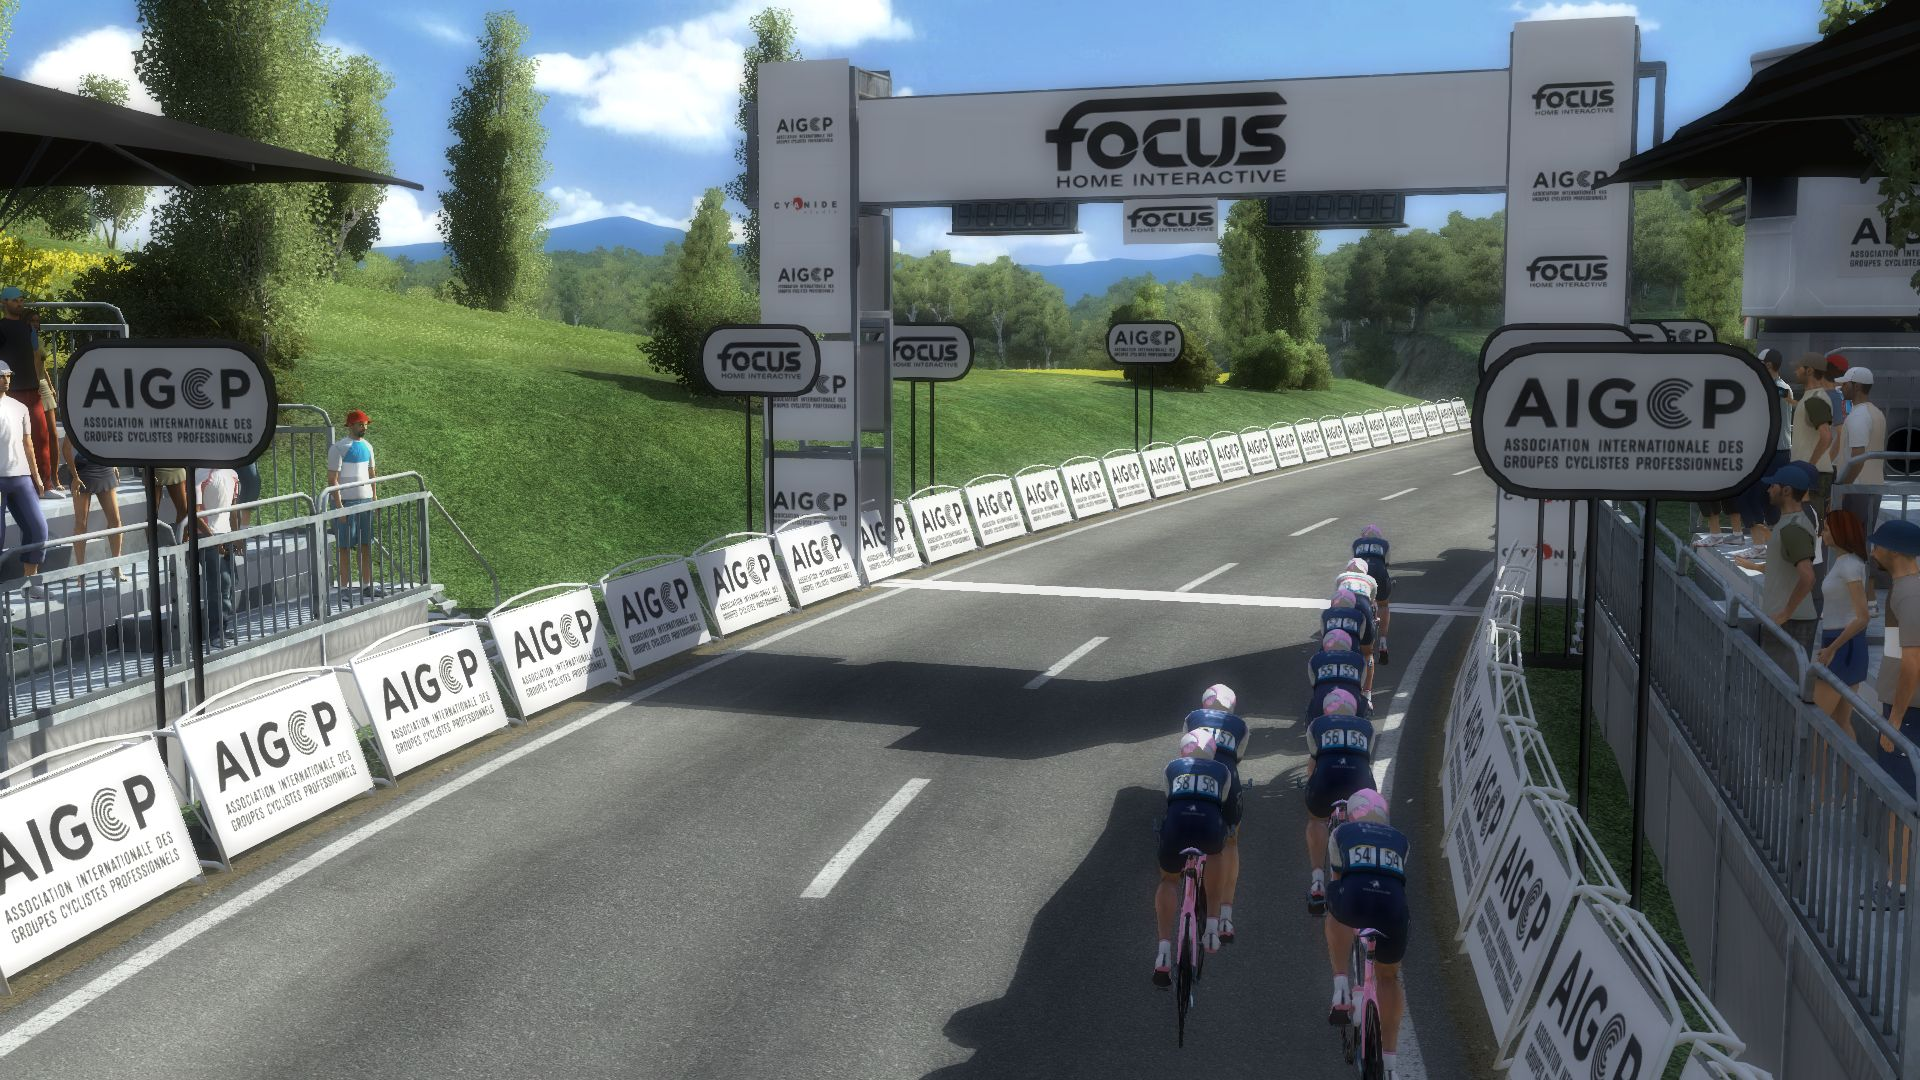 pcmdaily.com/images/mg/2019/Races/HC/Slovenie/mg19_slo_s01_22.jpg